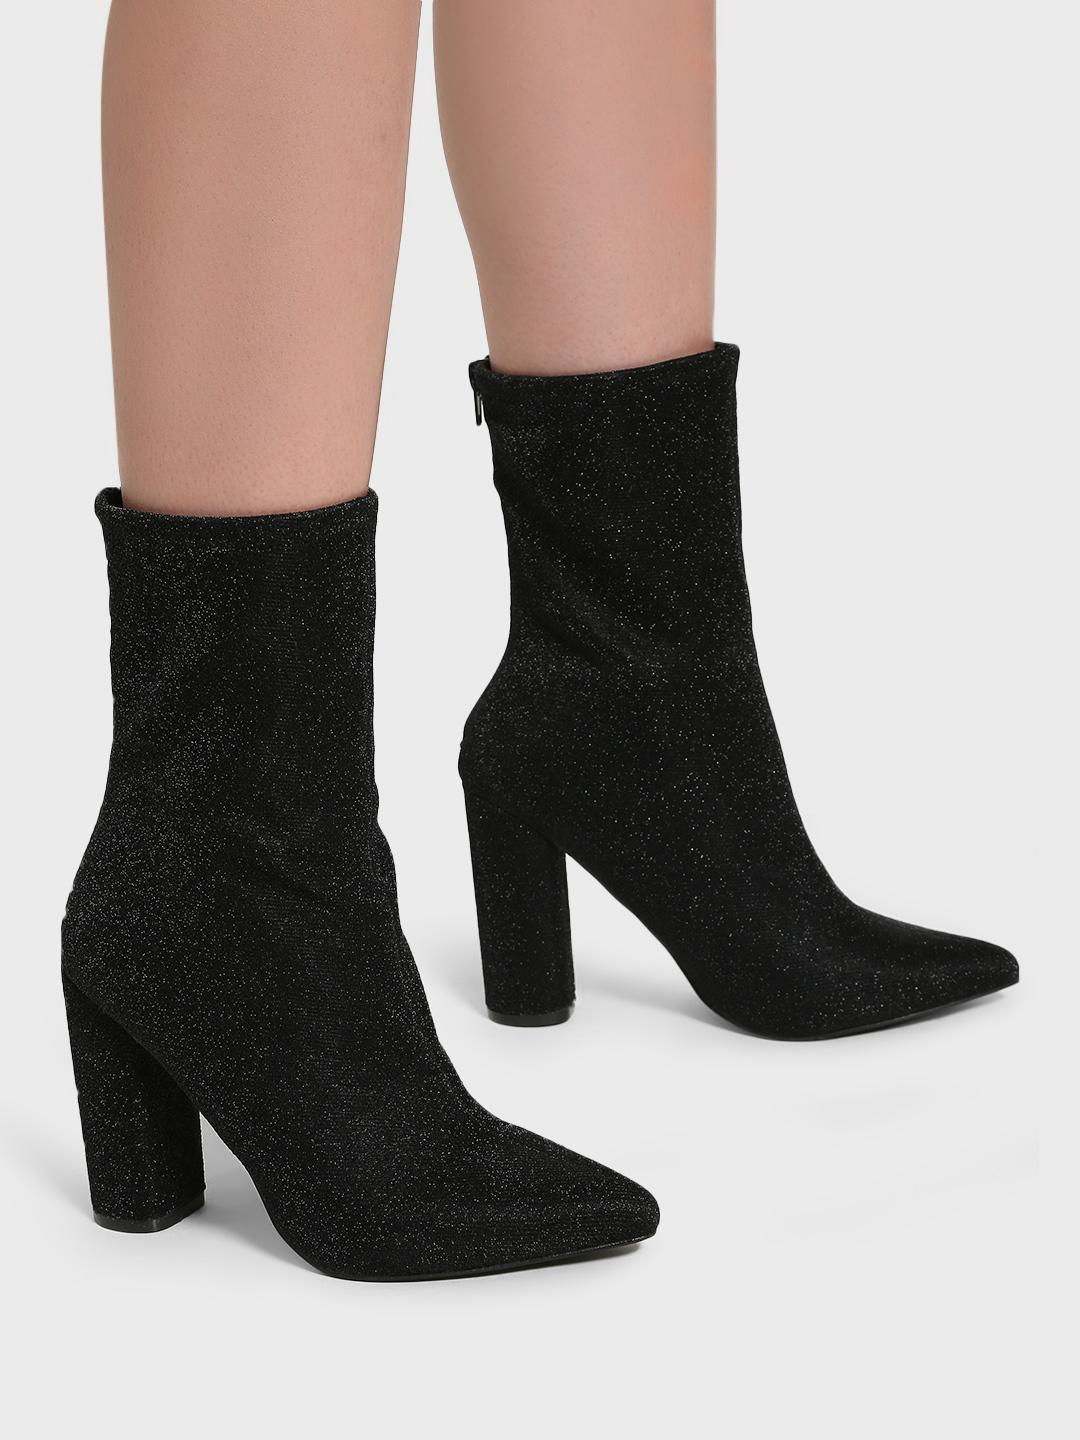 Intoto Black Shimmer Calf-Length Boots 1